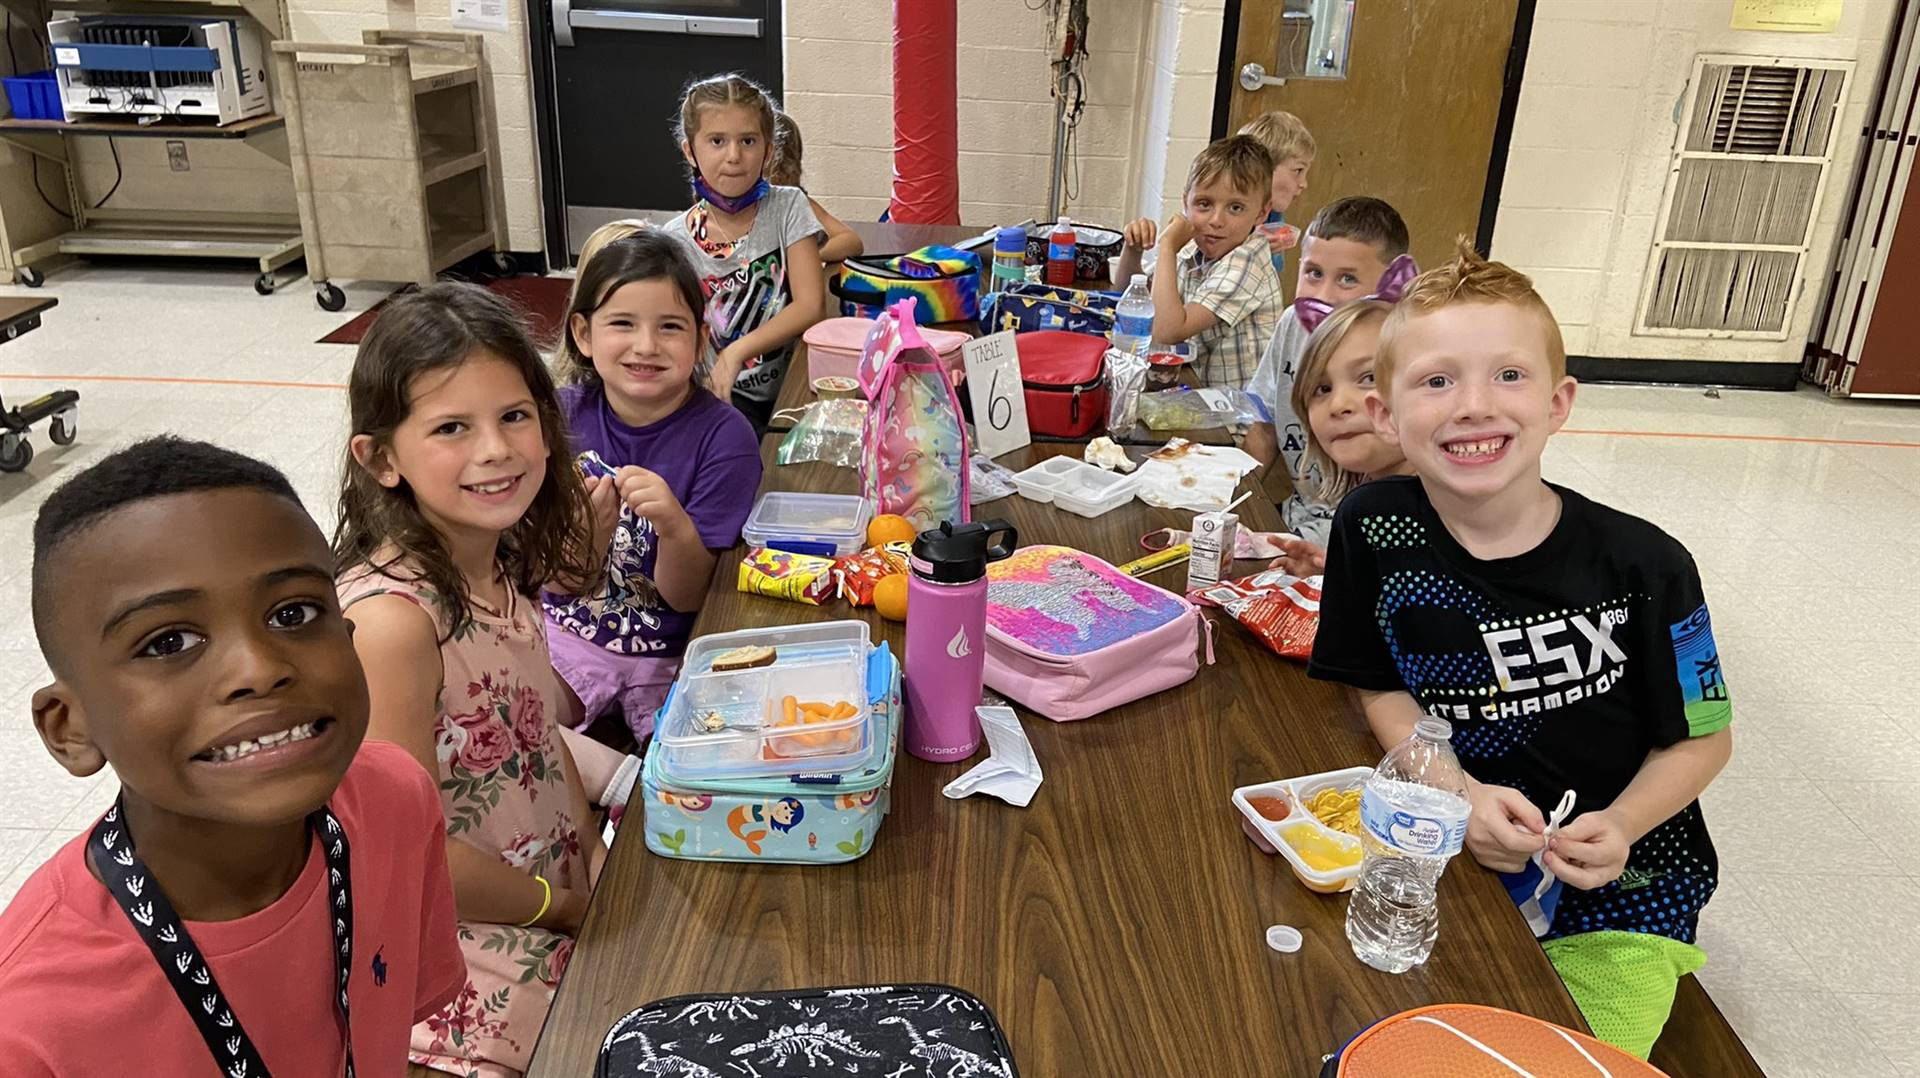 Photo 9:  Munson students at a lunch table during lunchtime smiling for the camera